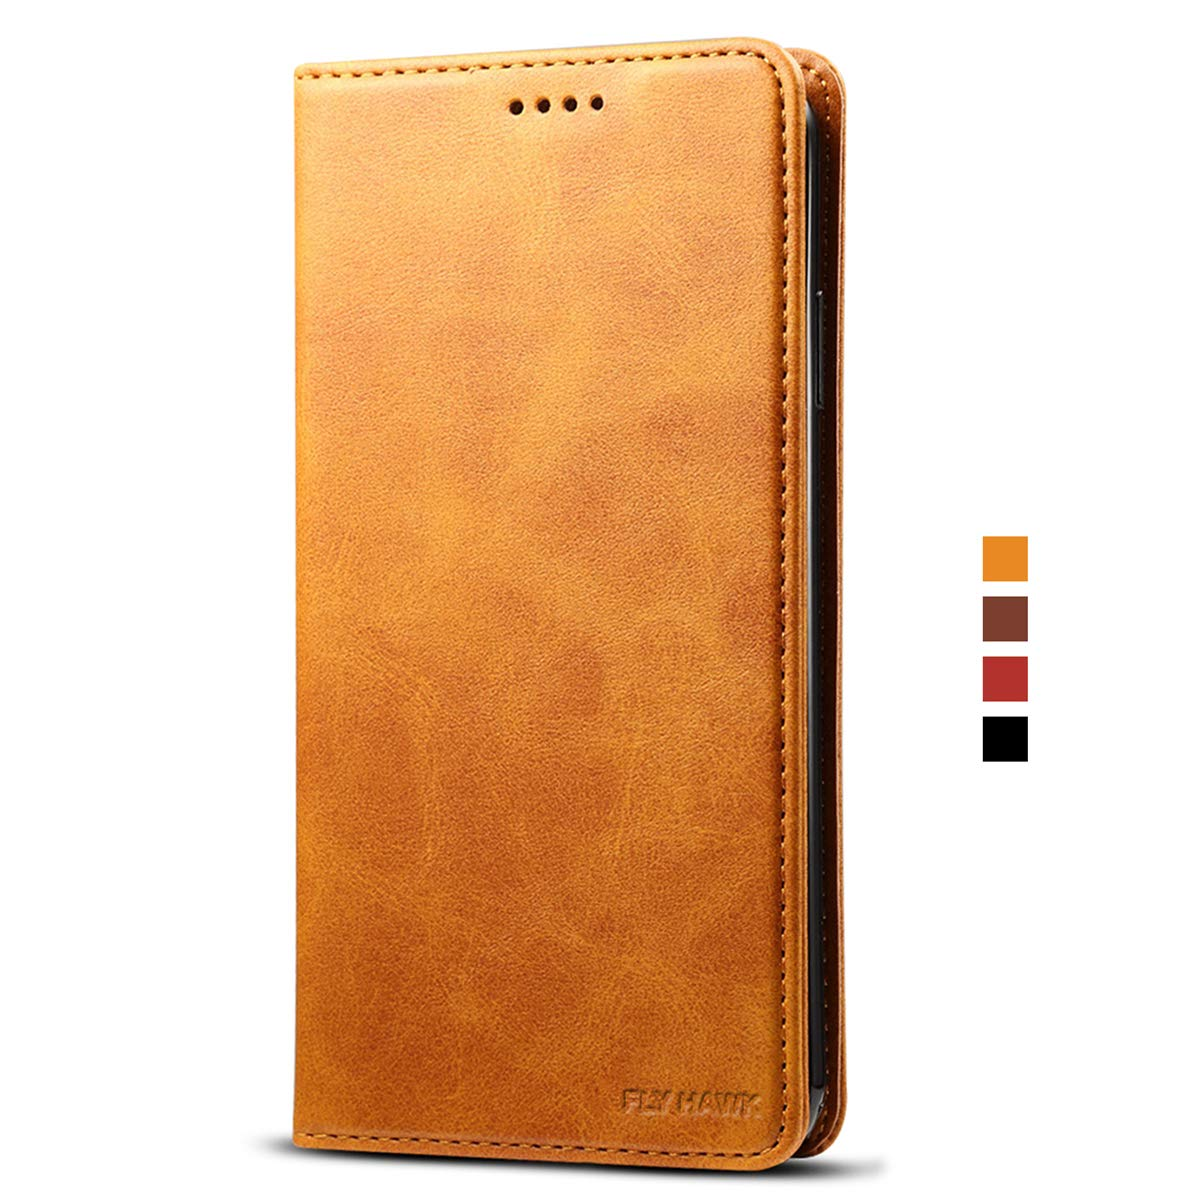 For iphone XR PU Wallet Kickstand Flip Phone Cover Case with Card Slot, Brown FLY HAWK